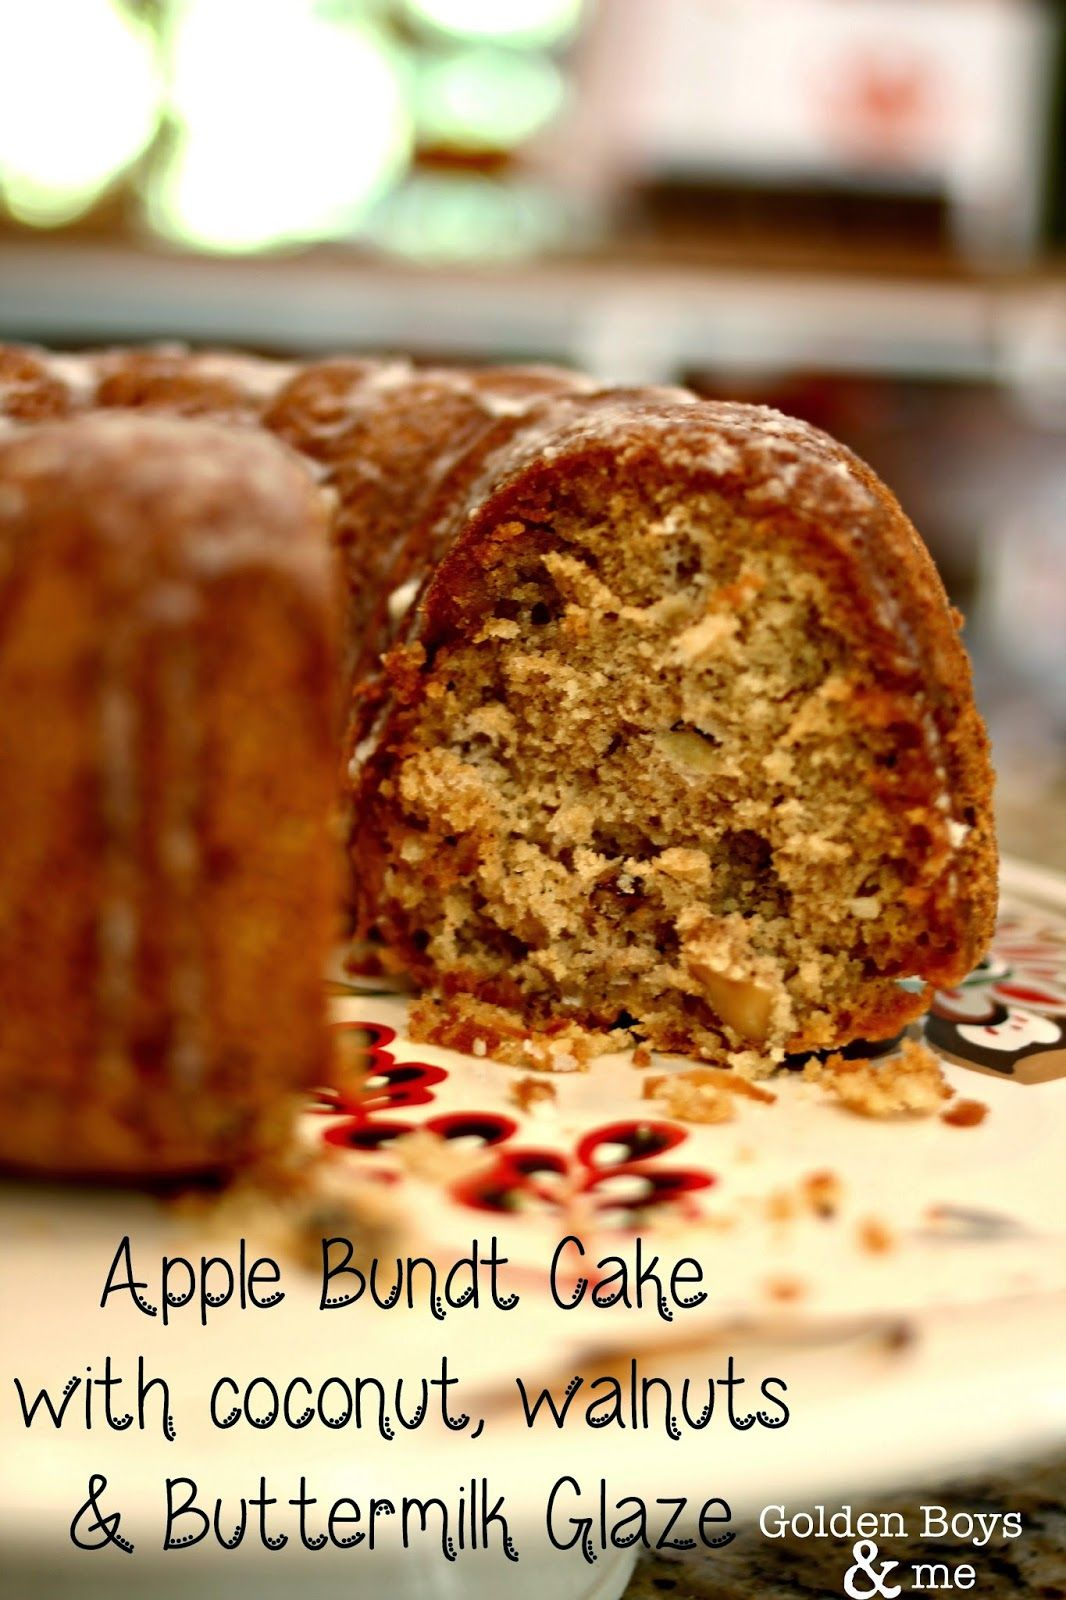 Recipe Our Favorite Apple Cake Cakes Made With Buttermilk Recipes Apple Bundt Cake Recipes